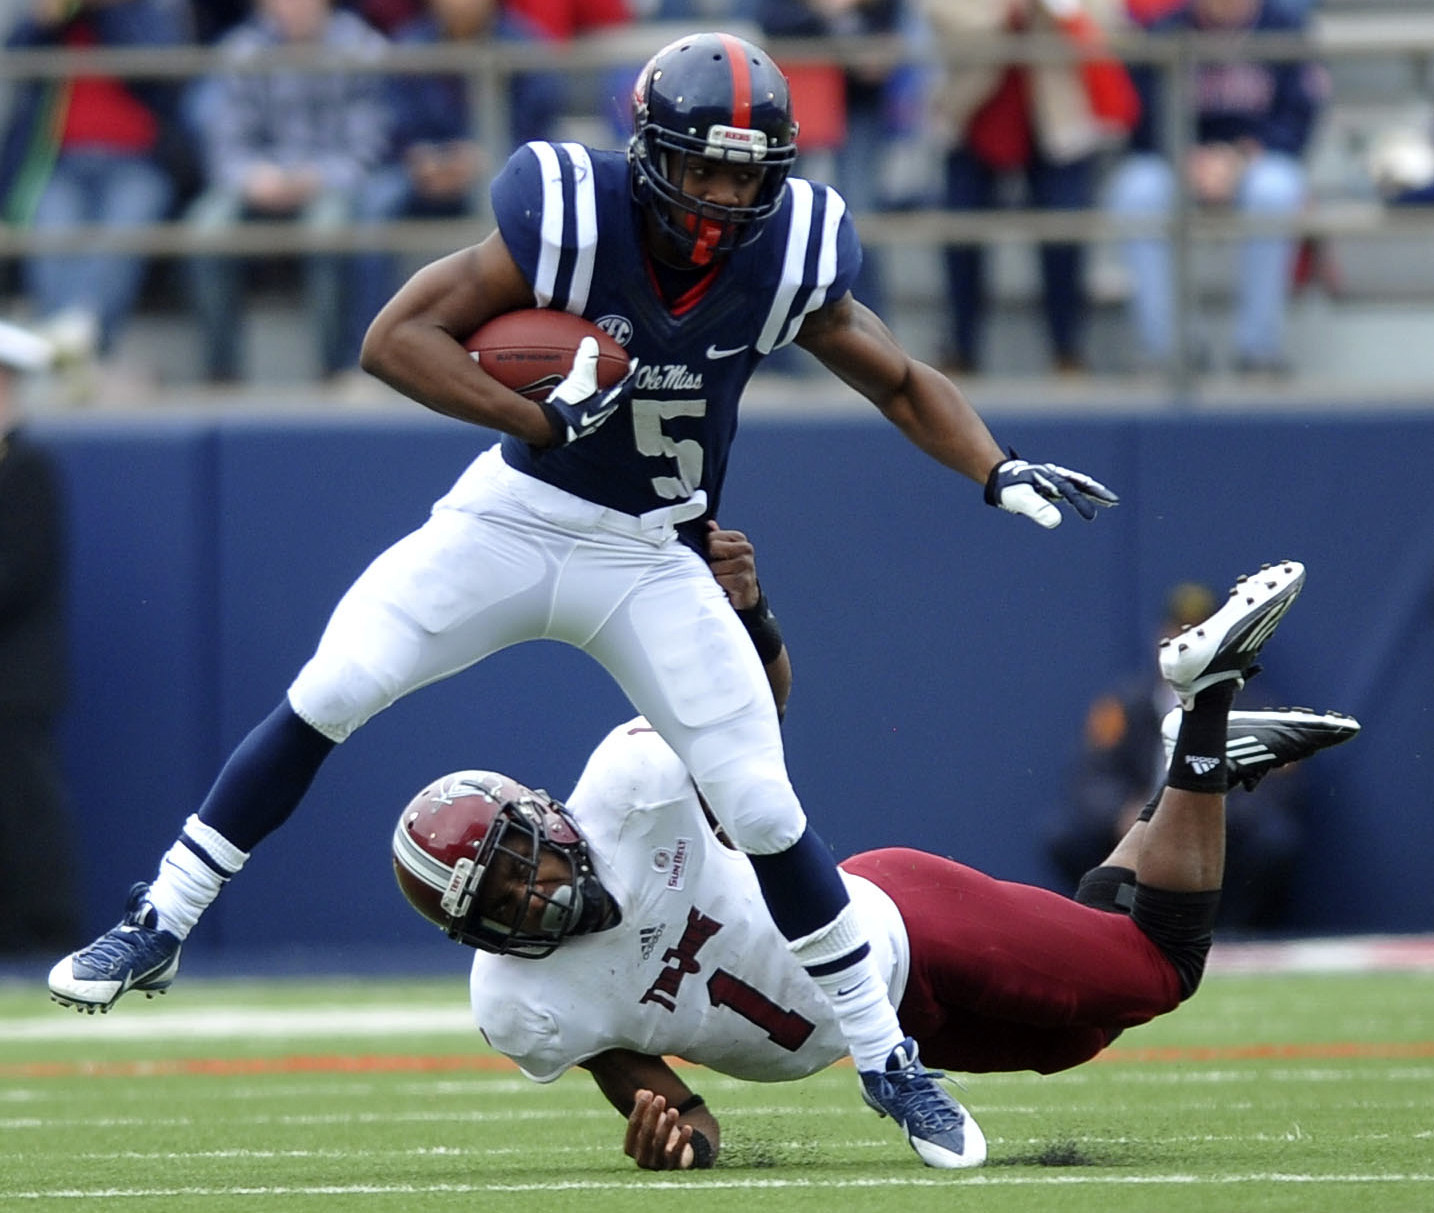 Mississippi running back I'Tavius Mathers (5) is tackled by Troy safety Camren Hudson (1) during an NCAA college football game in Oxford, Miss., Saturday, Nov. 16, 2013. Troy recovered the ball